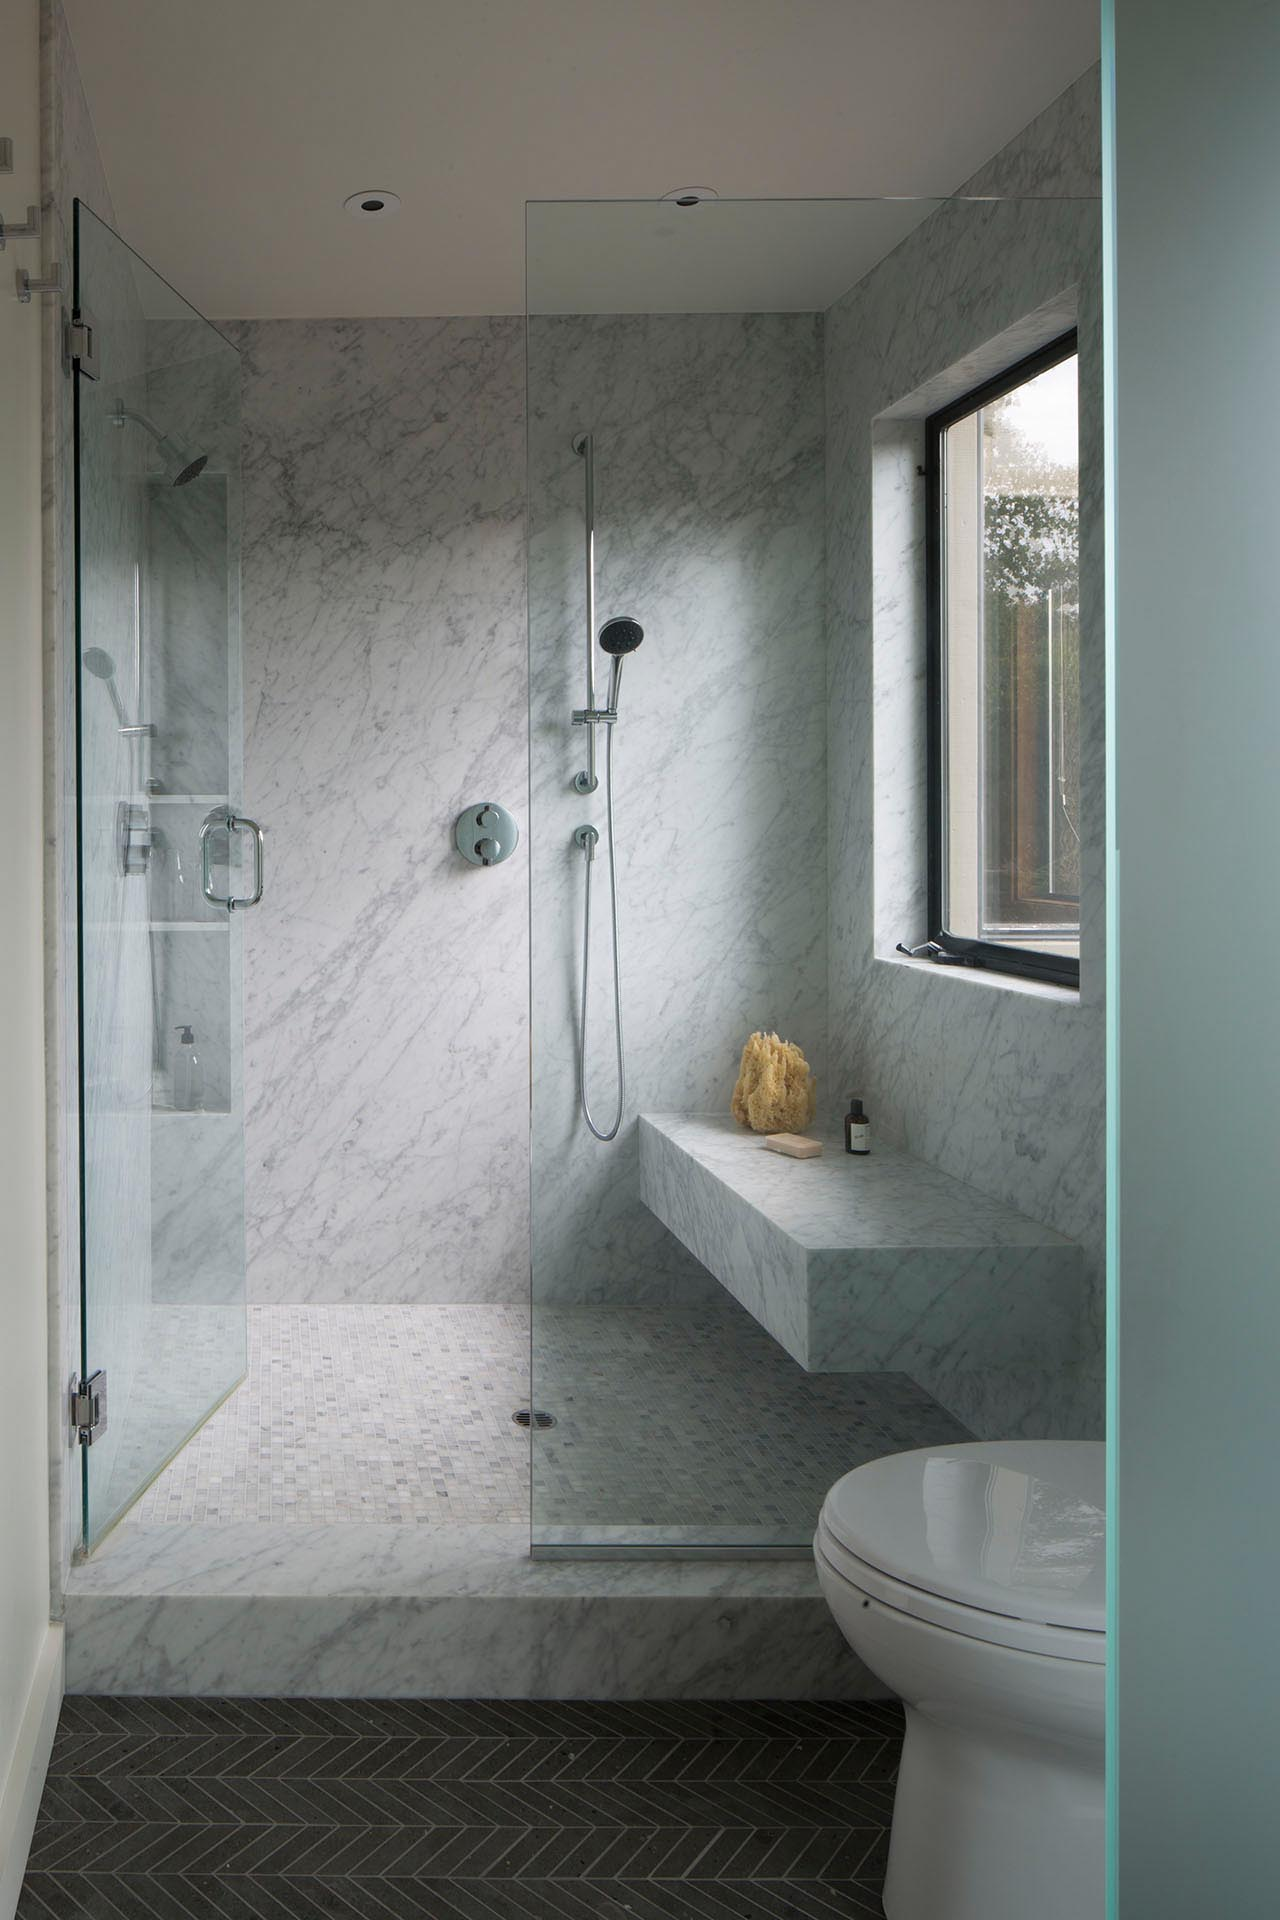 A modern bathroom with a walk-in shower that includes a bench and built-in shower niche.